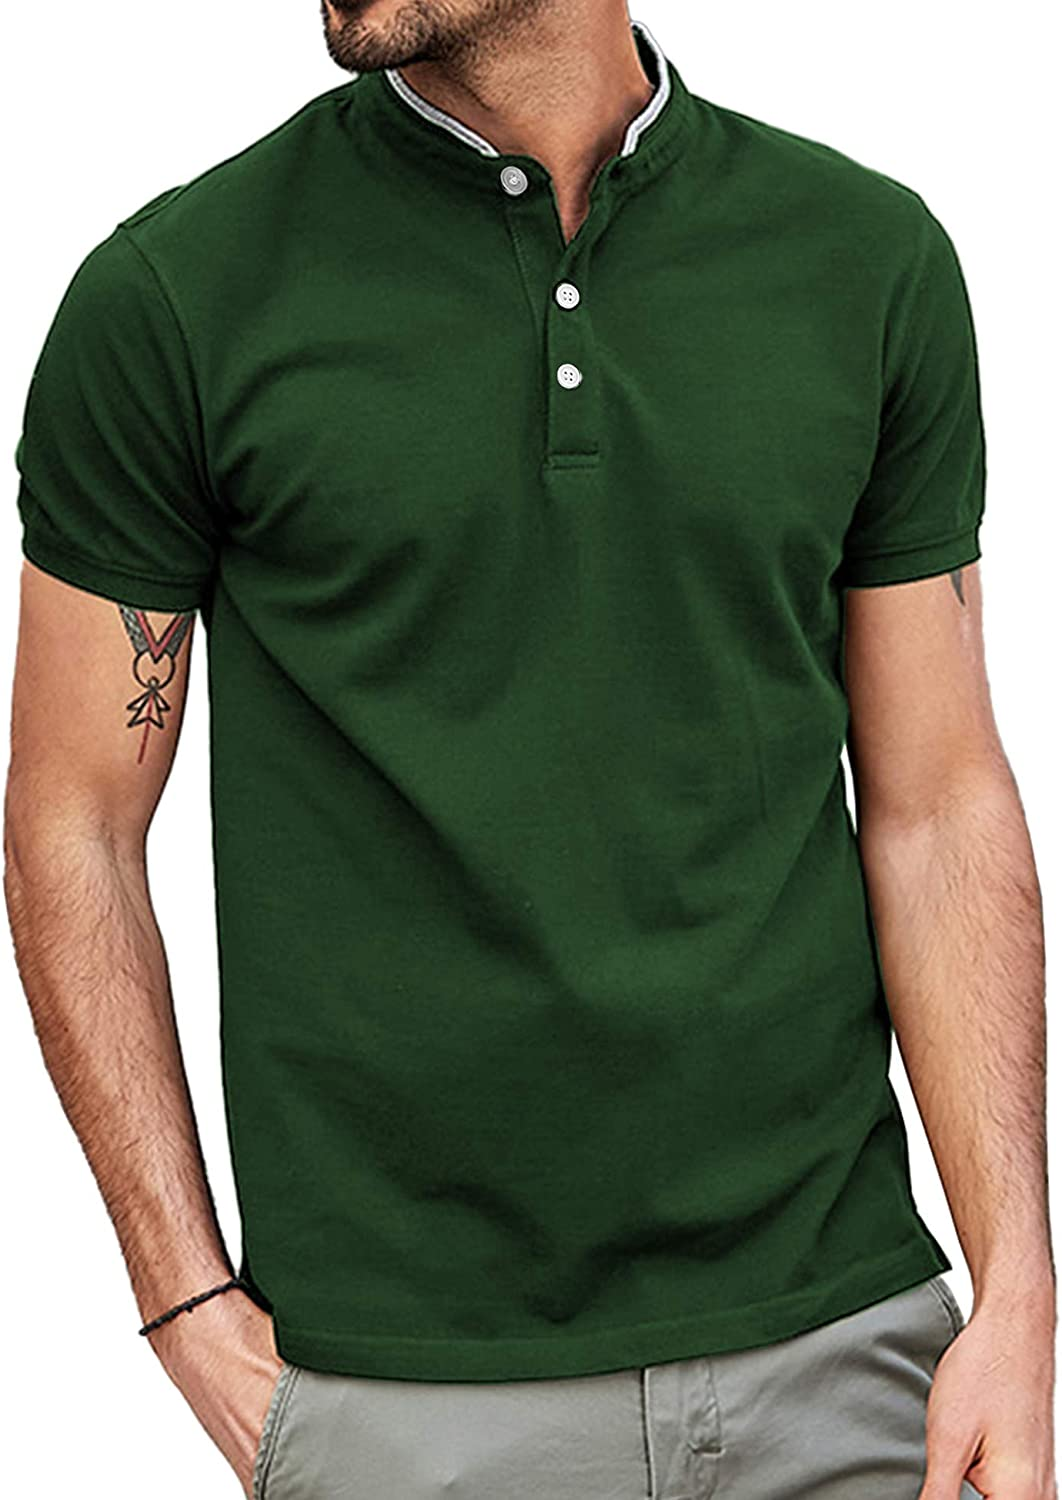 LecGee Men's Polo Shirts Short T-Shirts Sleeves Limited cheap time sale Regular Athletic